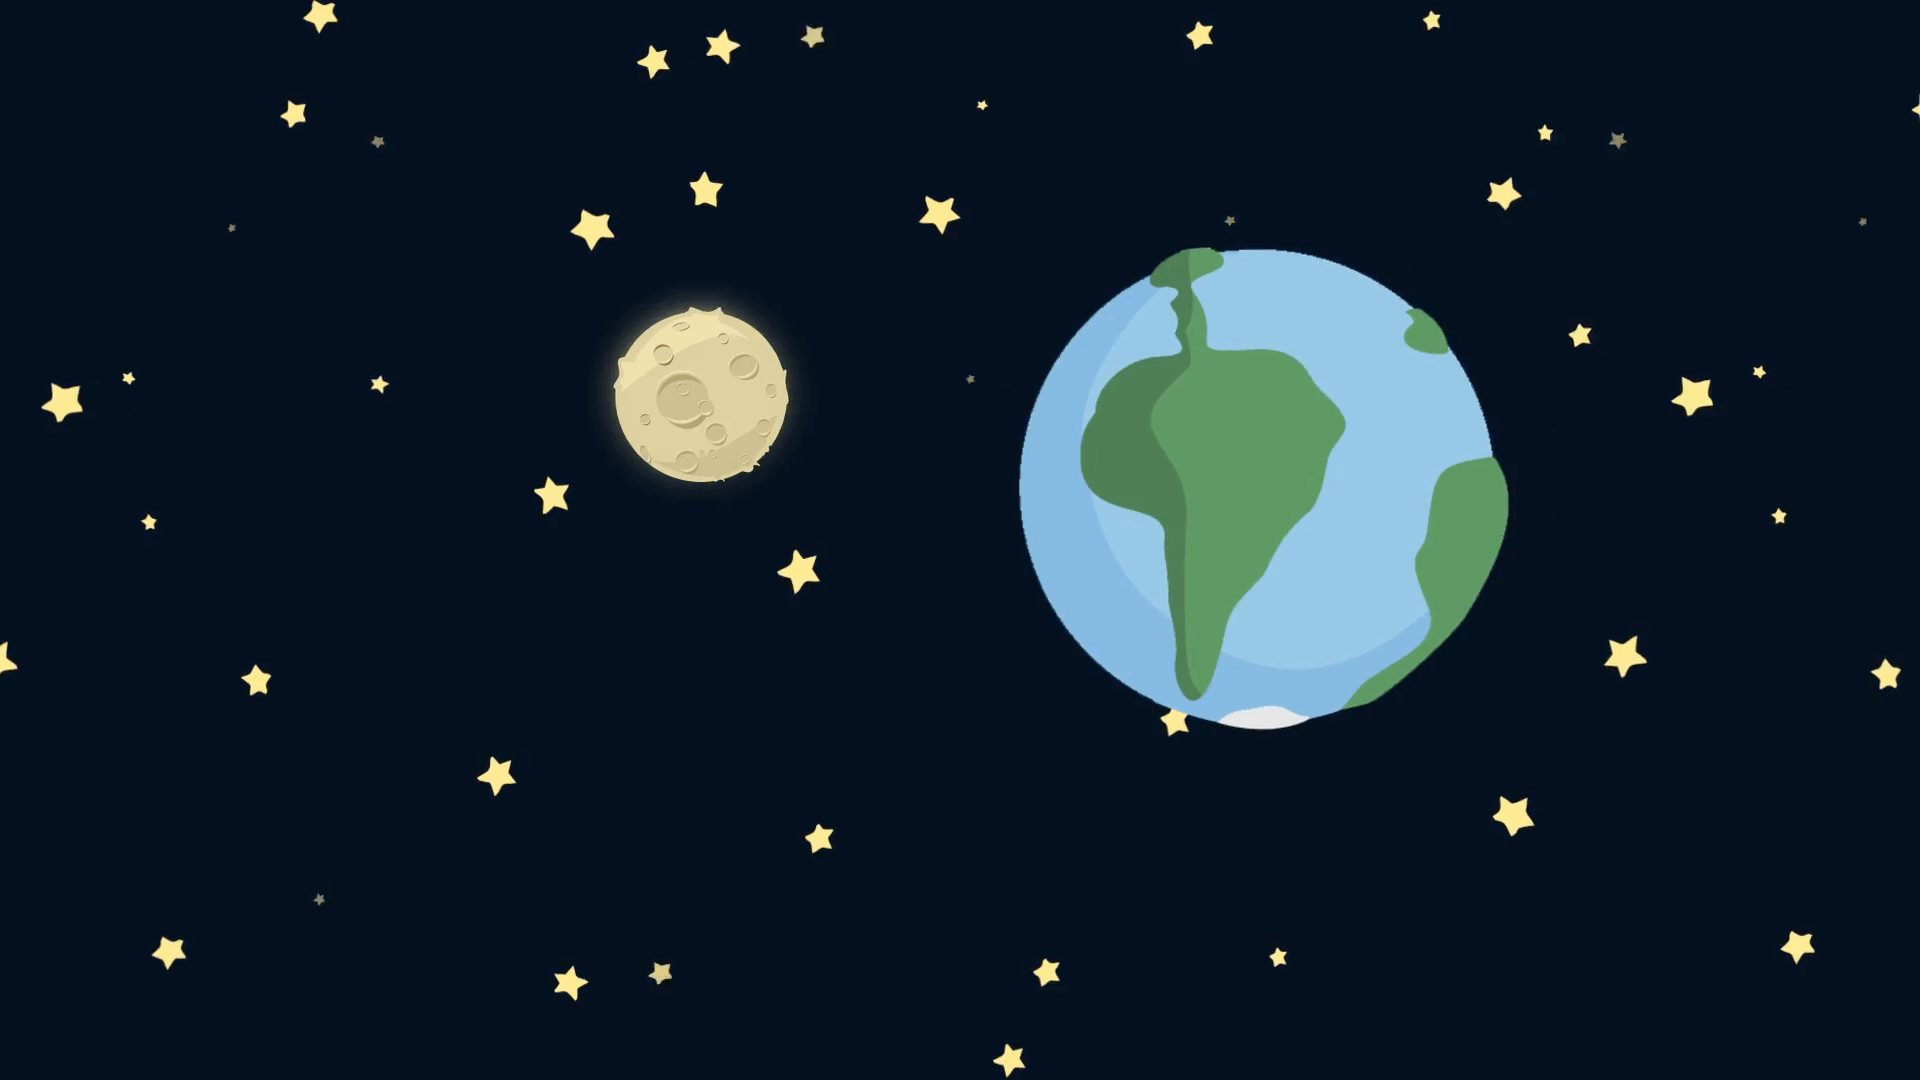 1920x1080 Cartoon Earth and Moon from Space with Starry Night Motion ...